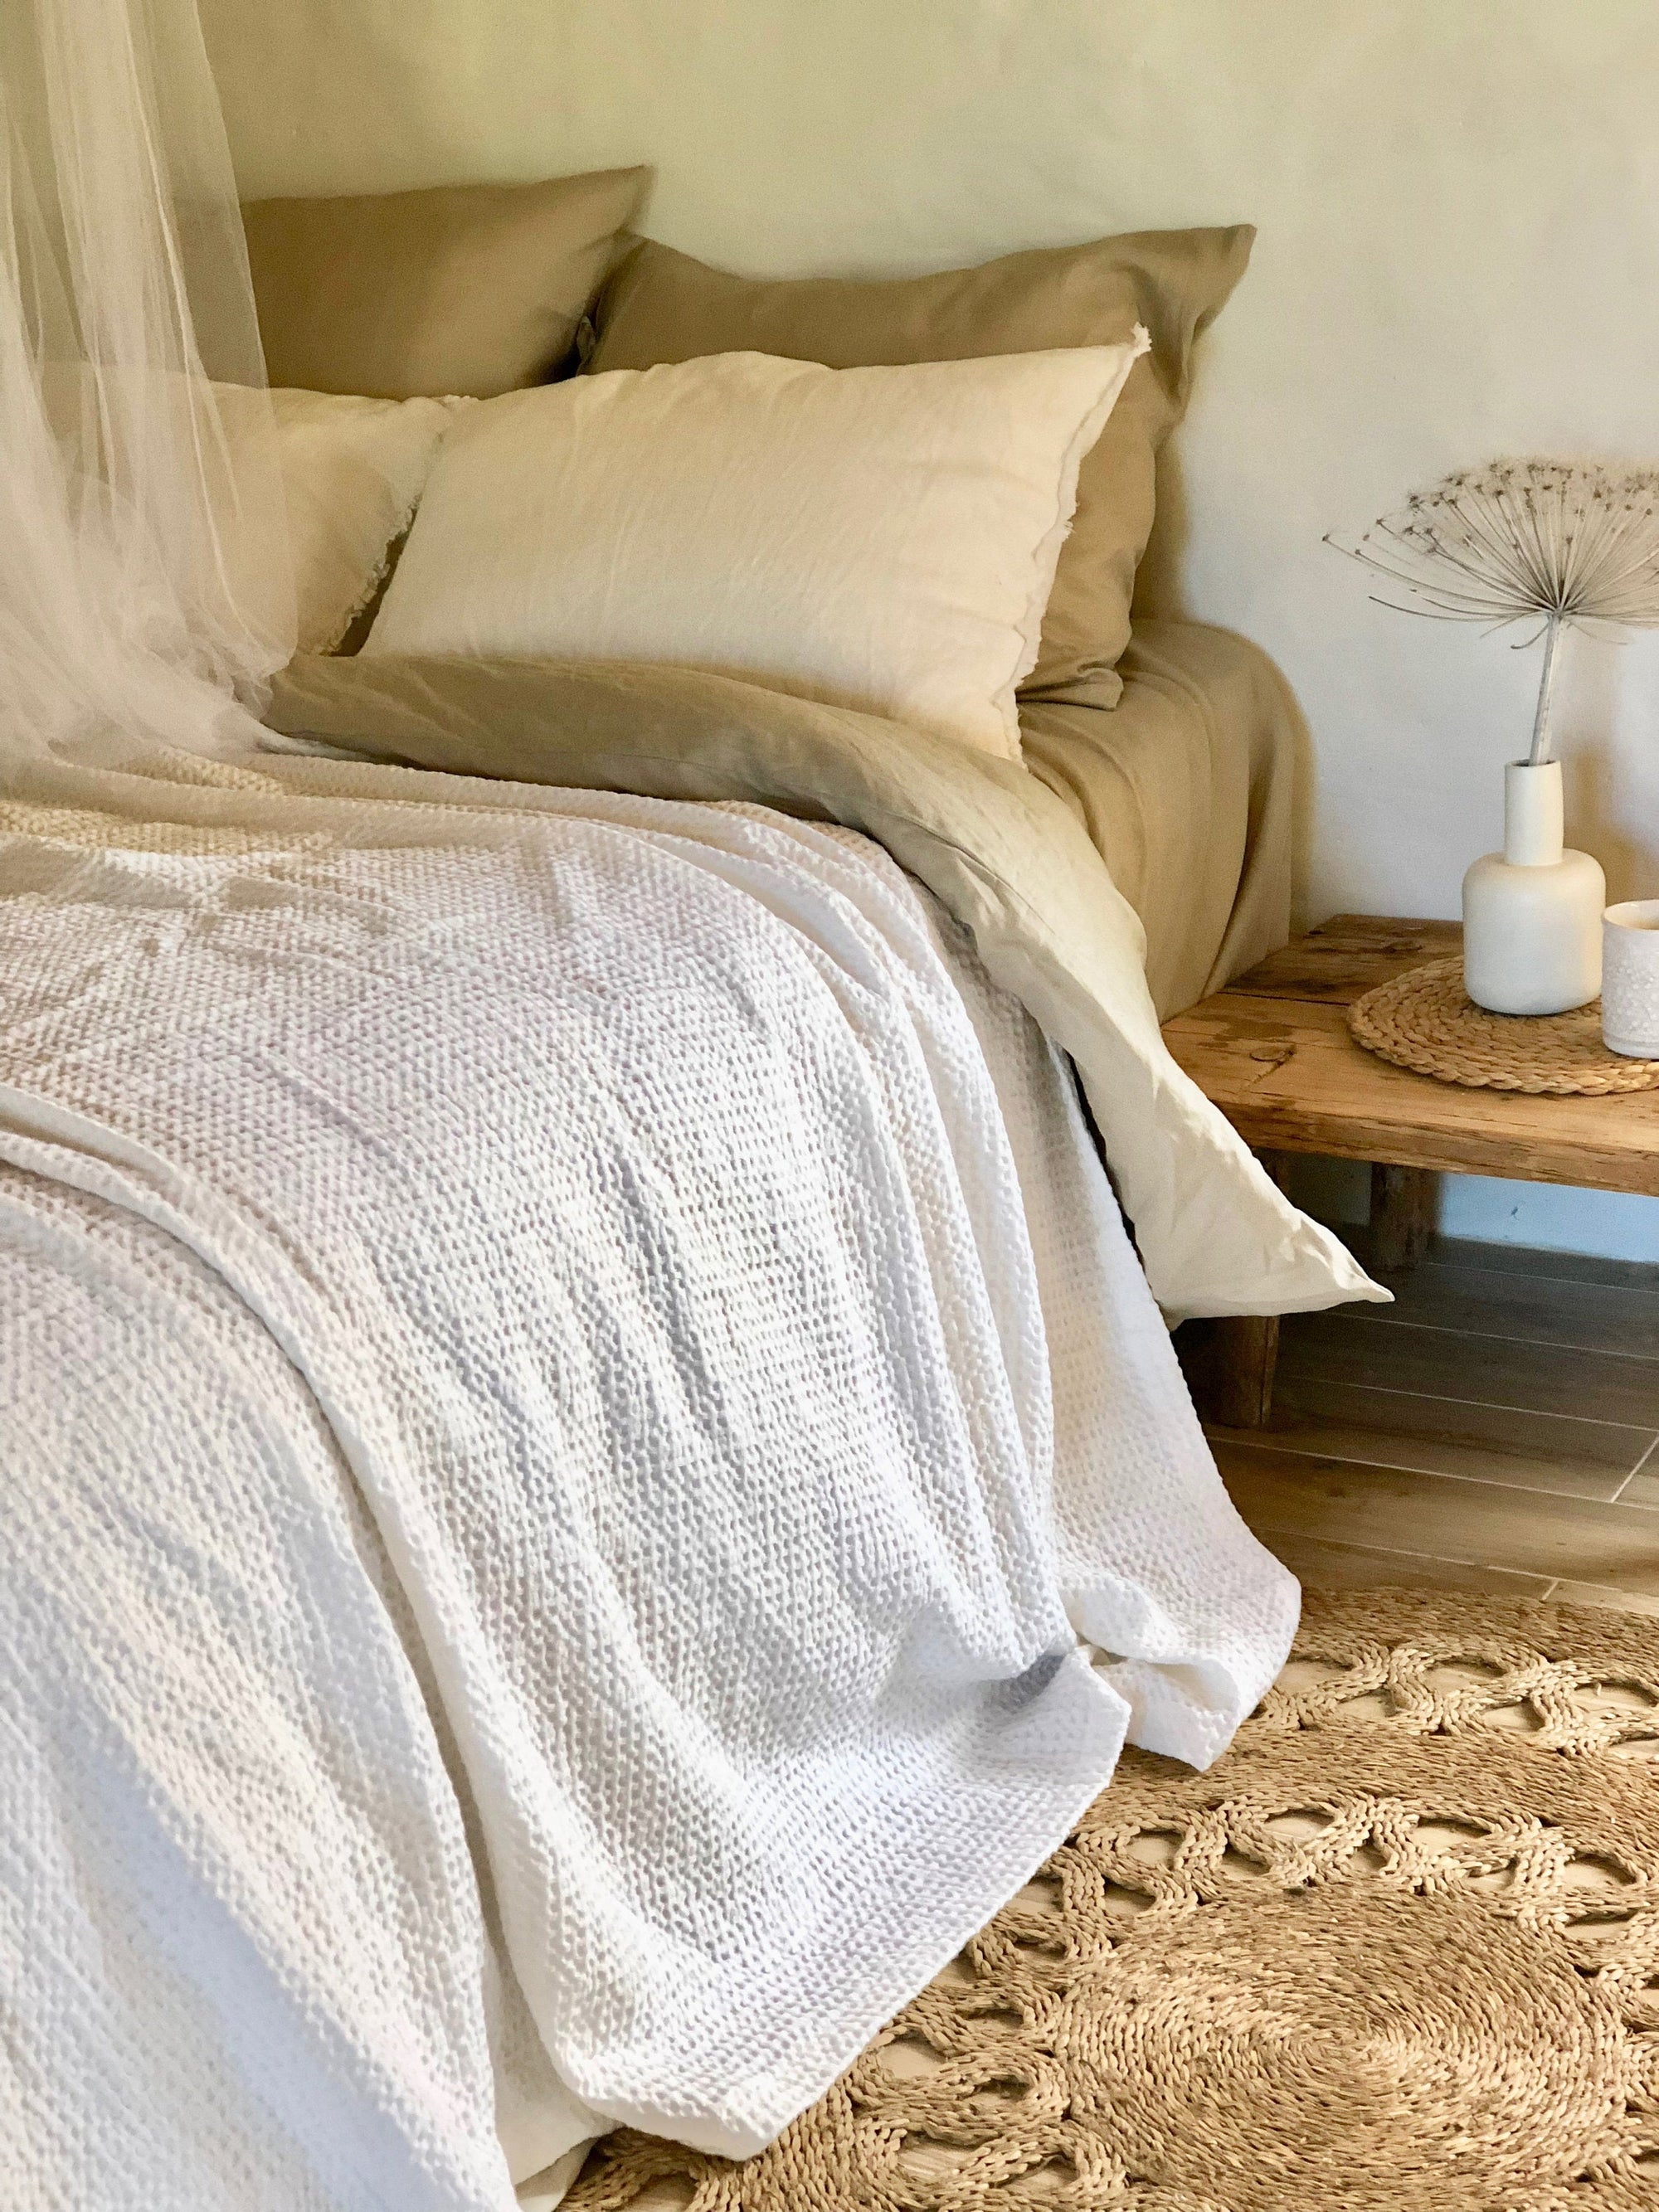 Bed cover White color Textured, Waffle  Linen blanket, Linen throw, Bed throw, rustic throw, White bed covers linen bedding